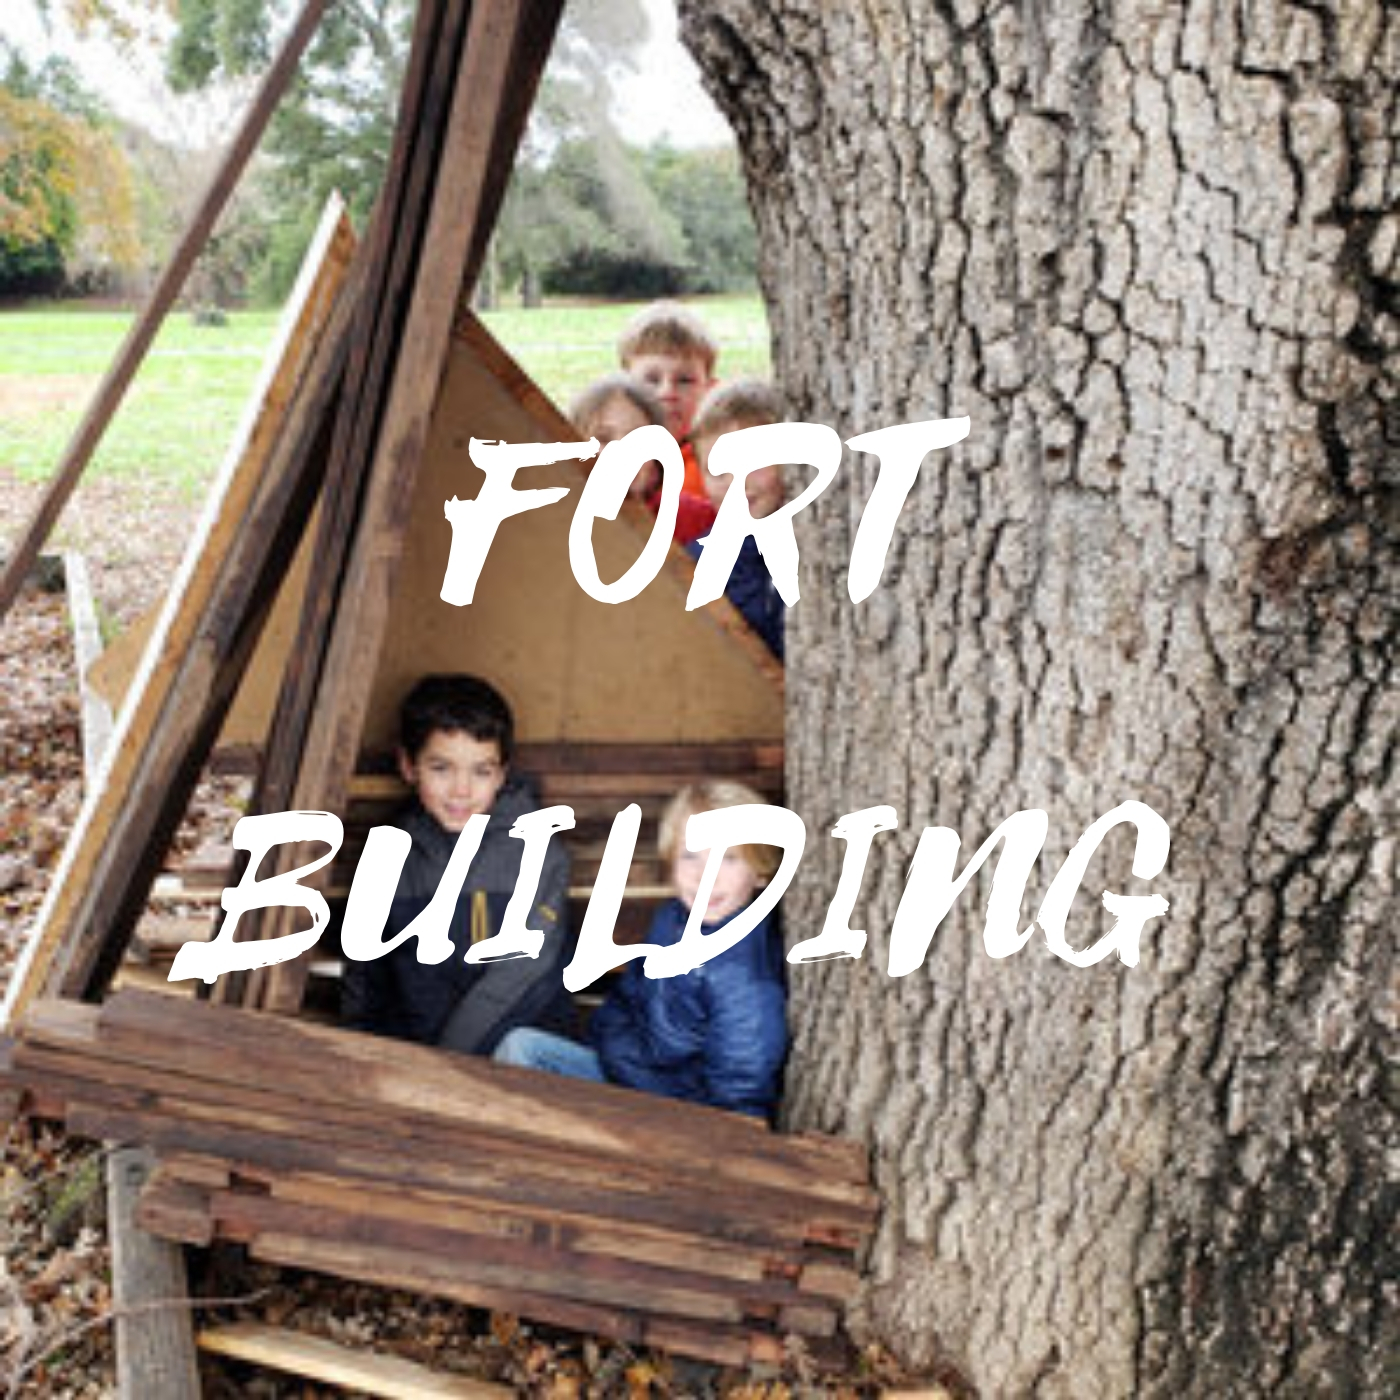 JULY 15 - 19 - Making outdoor hideaways is crucial for building imaginative play. Campers will explore different building techniques and materials to make one of a kind play spaces.